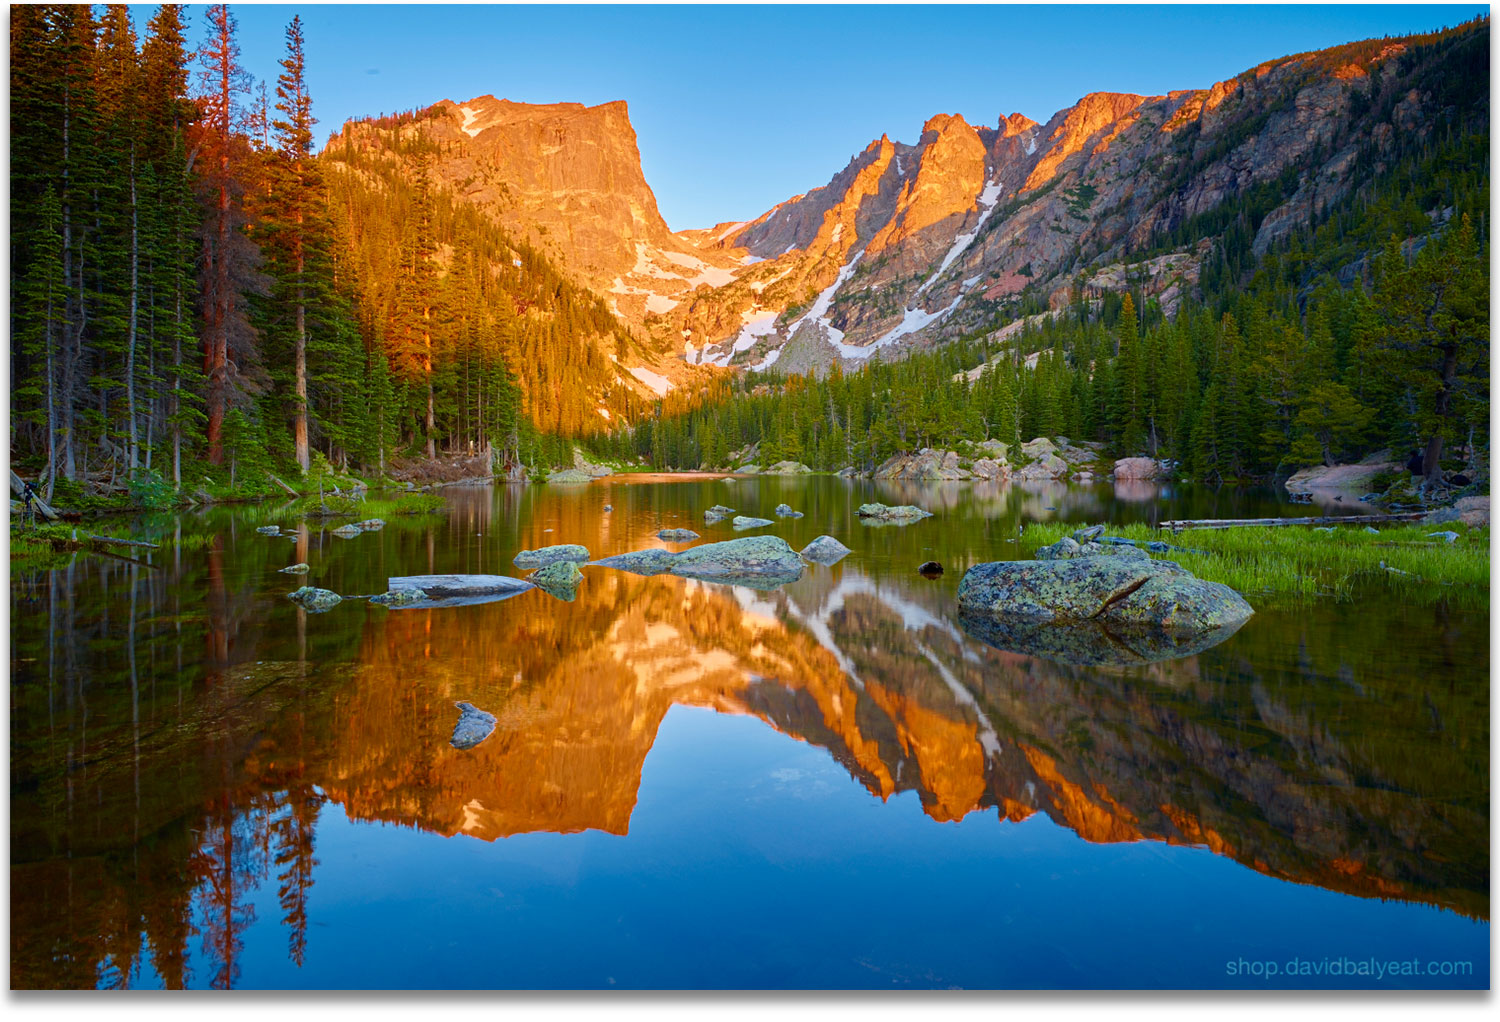 Dream Lake Rocky Mountain National Park Colorado artwork